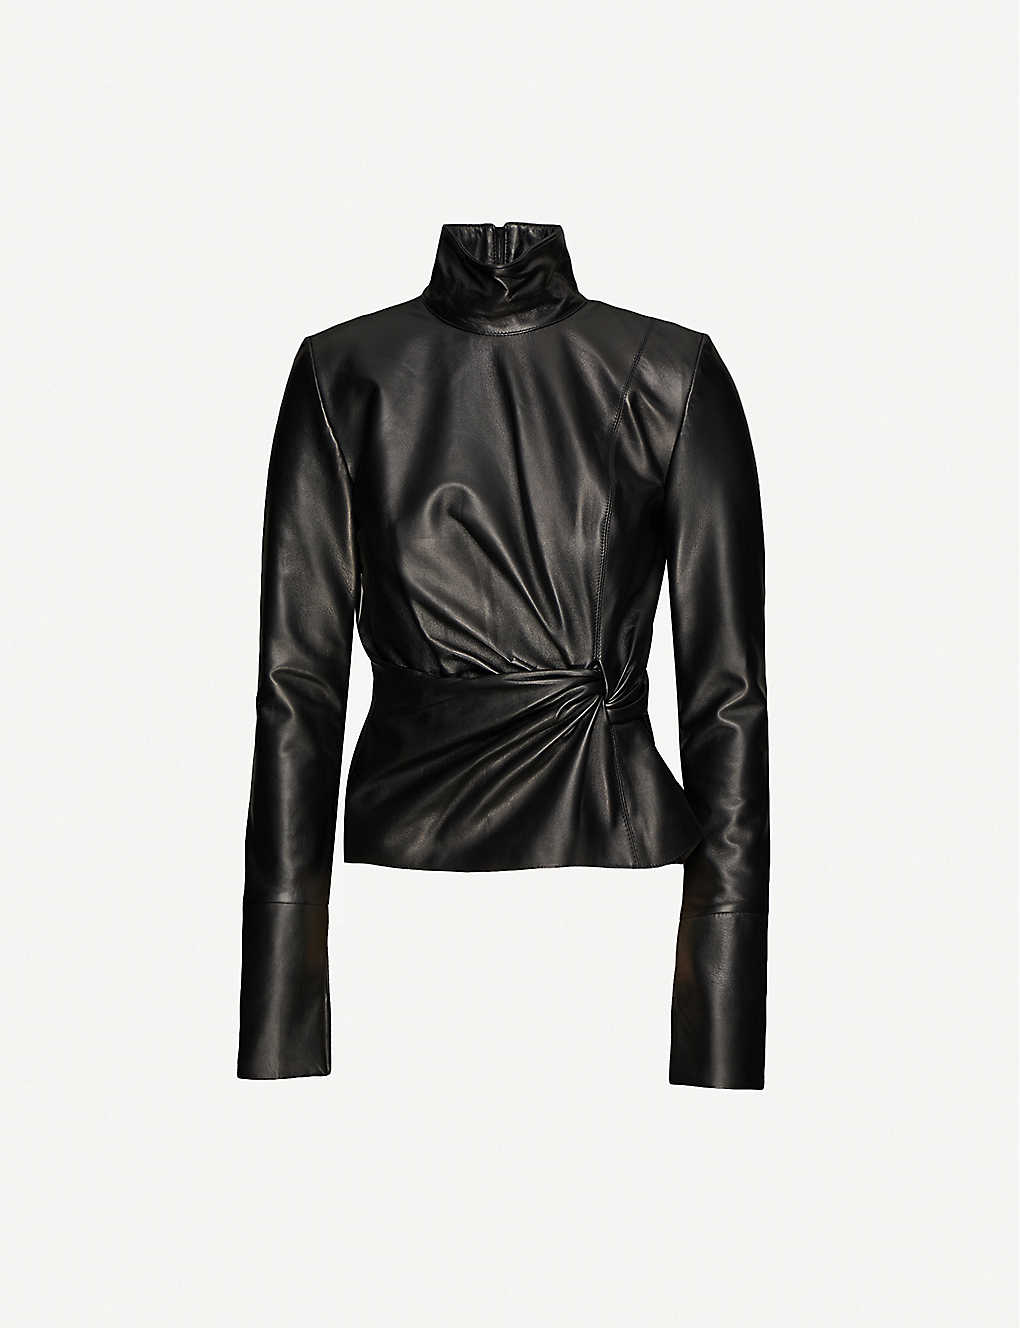 16 ARLINGTON: Yukie high-neck leather top